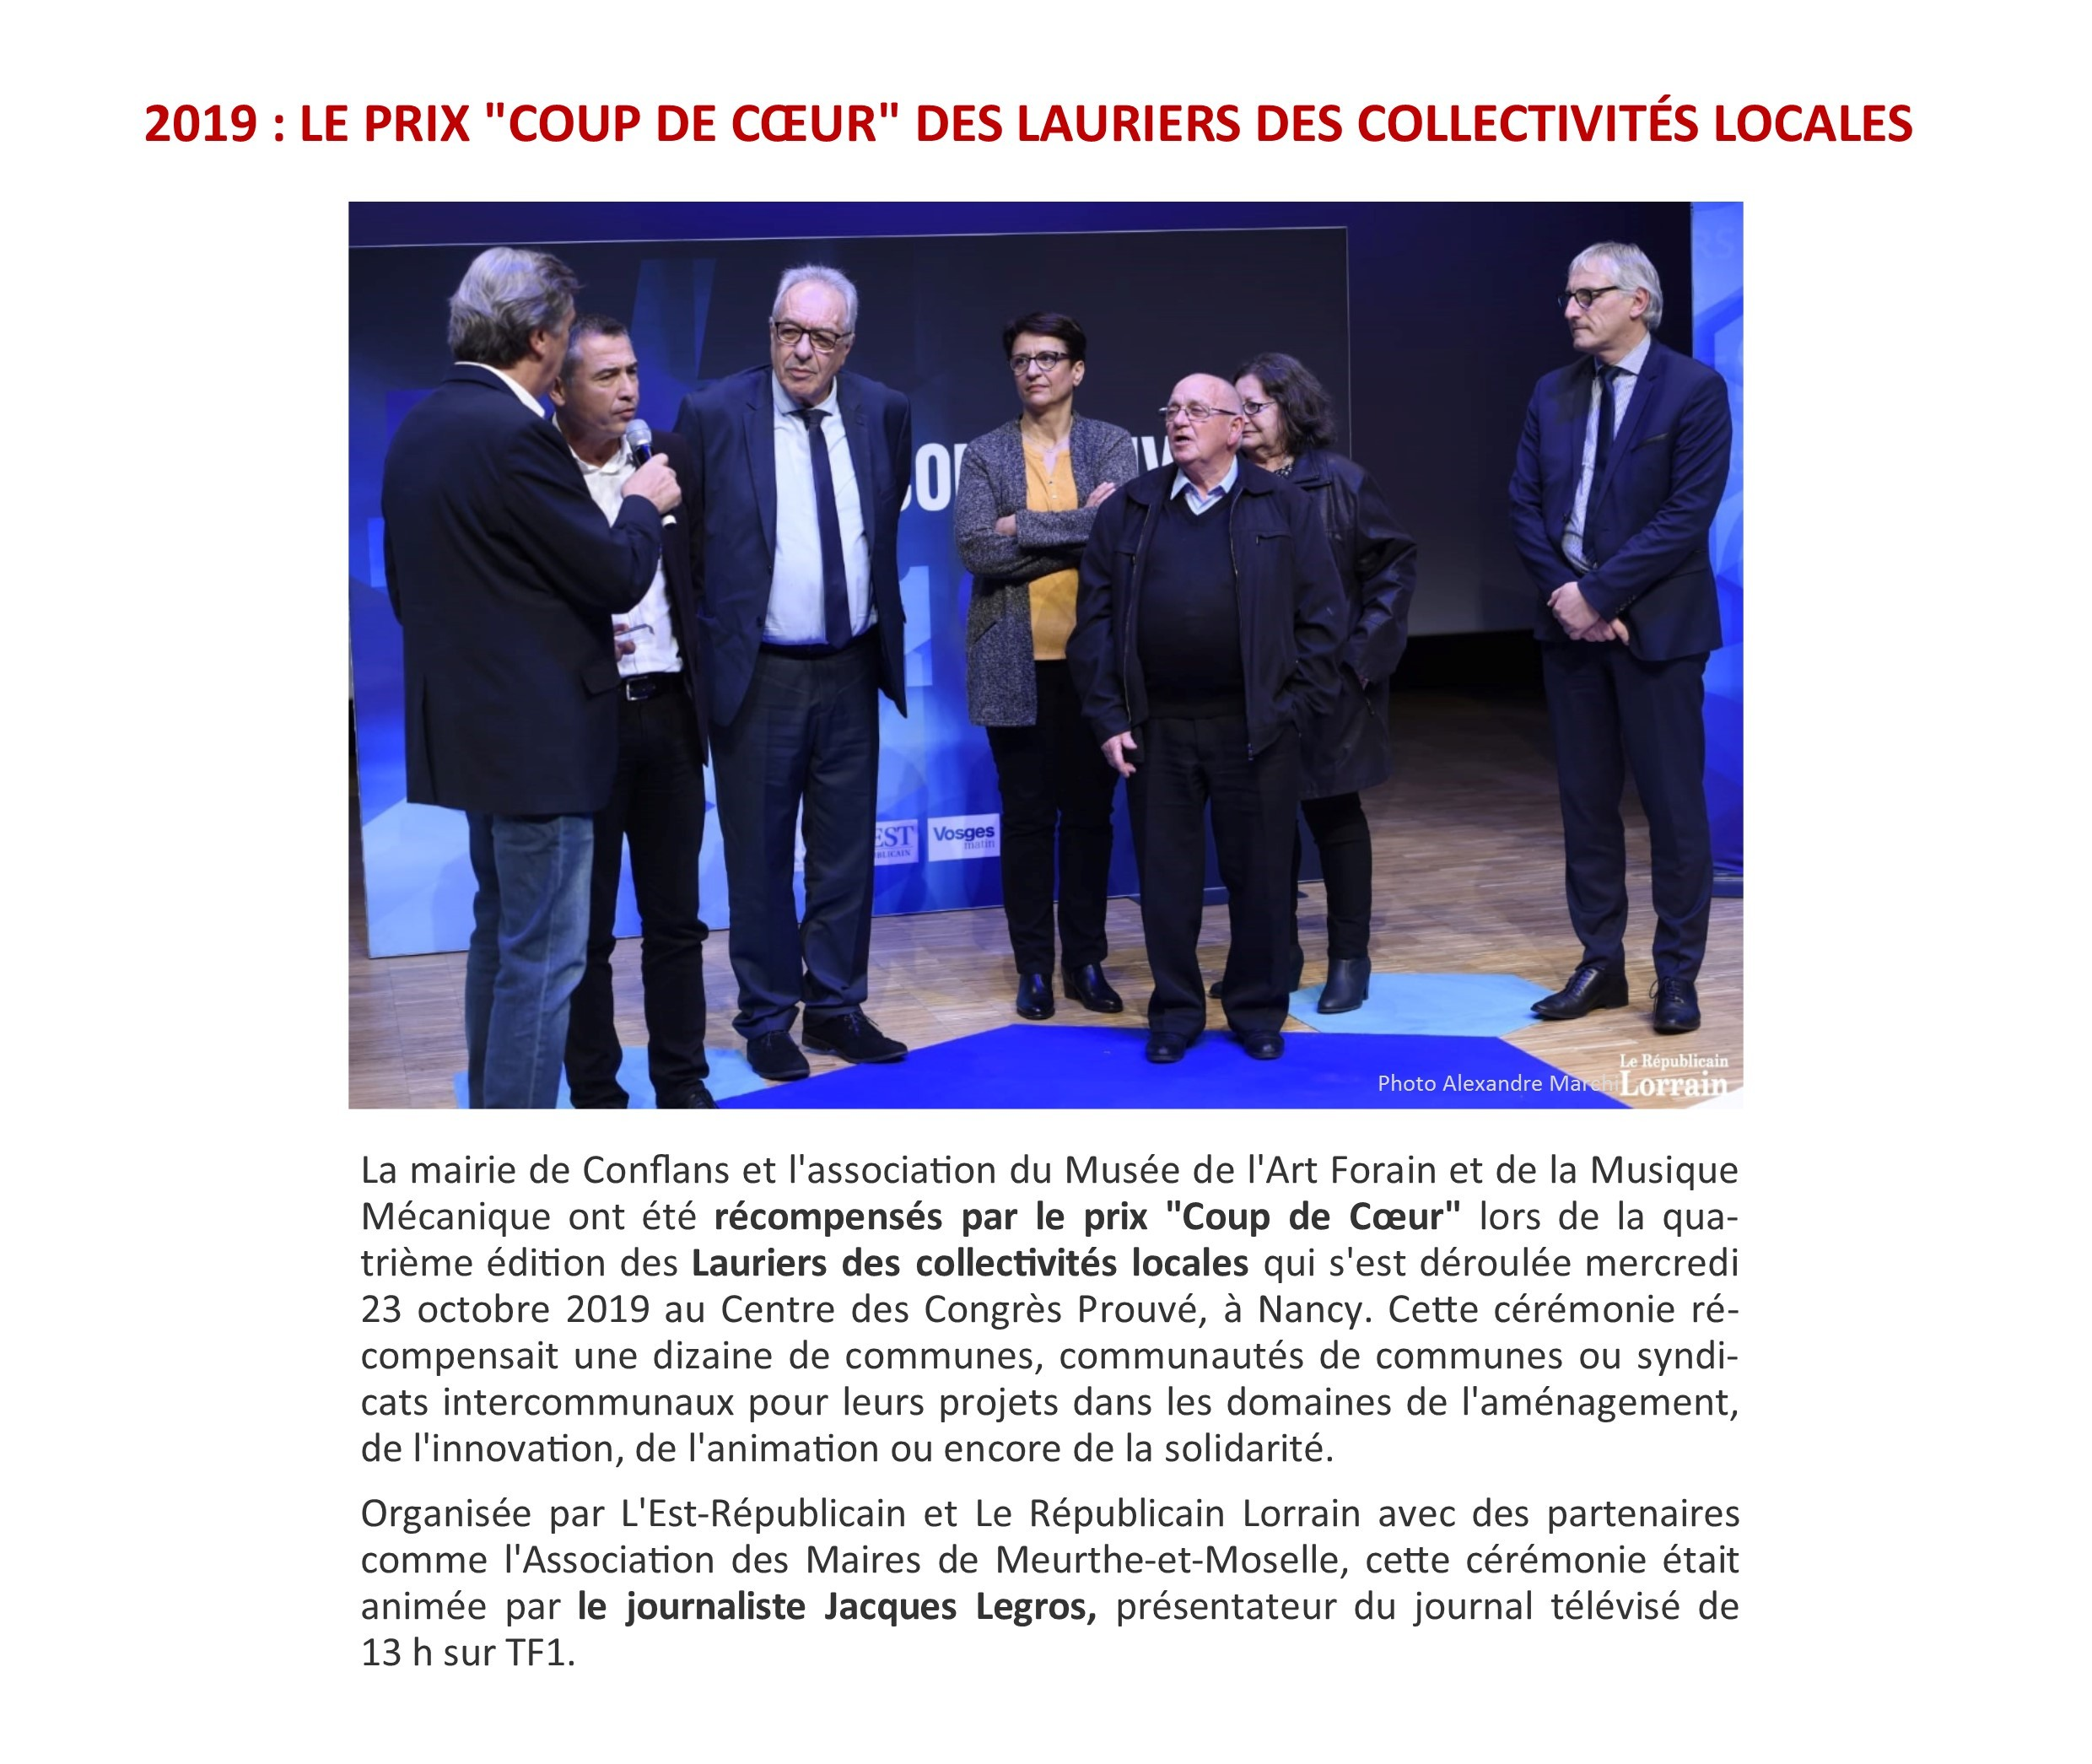 LAURIER DES COLLECTIVITES 2